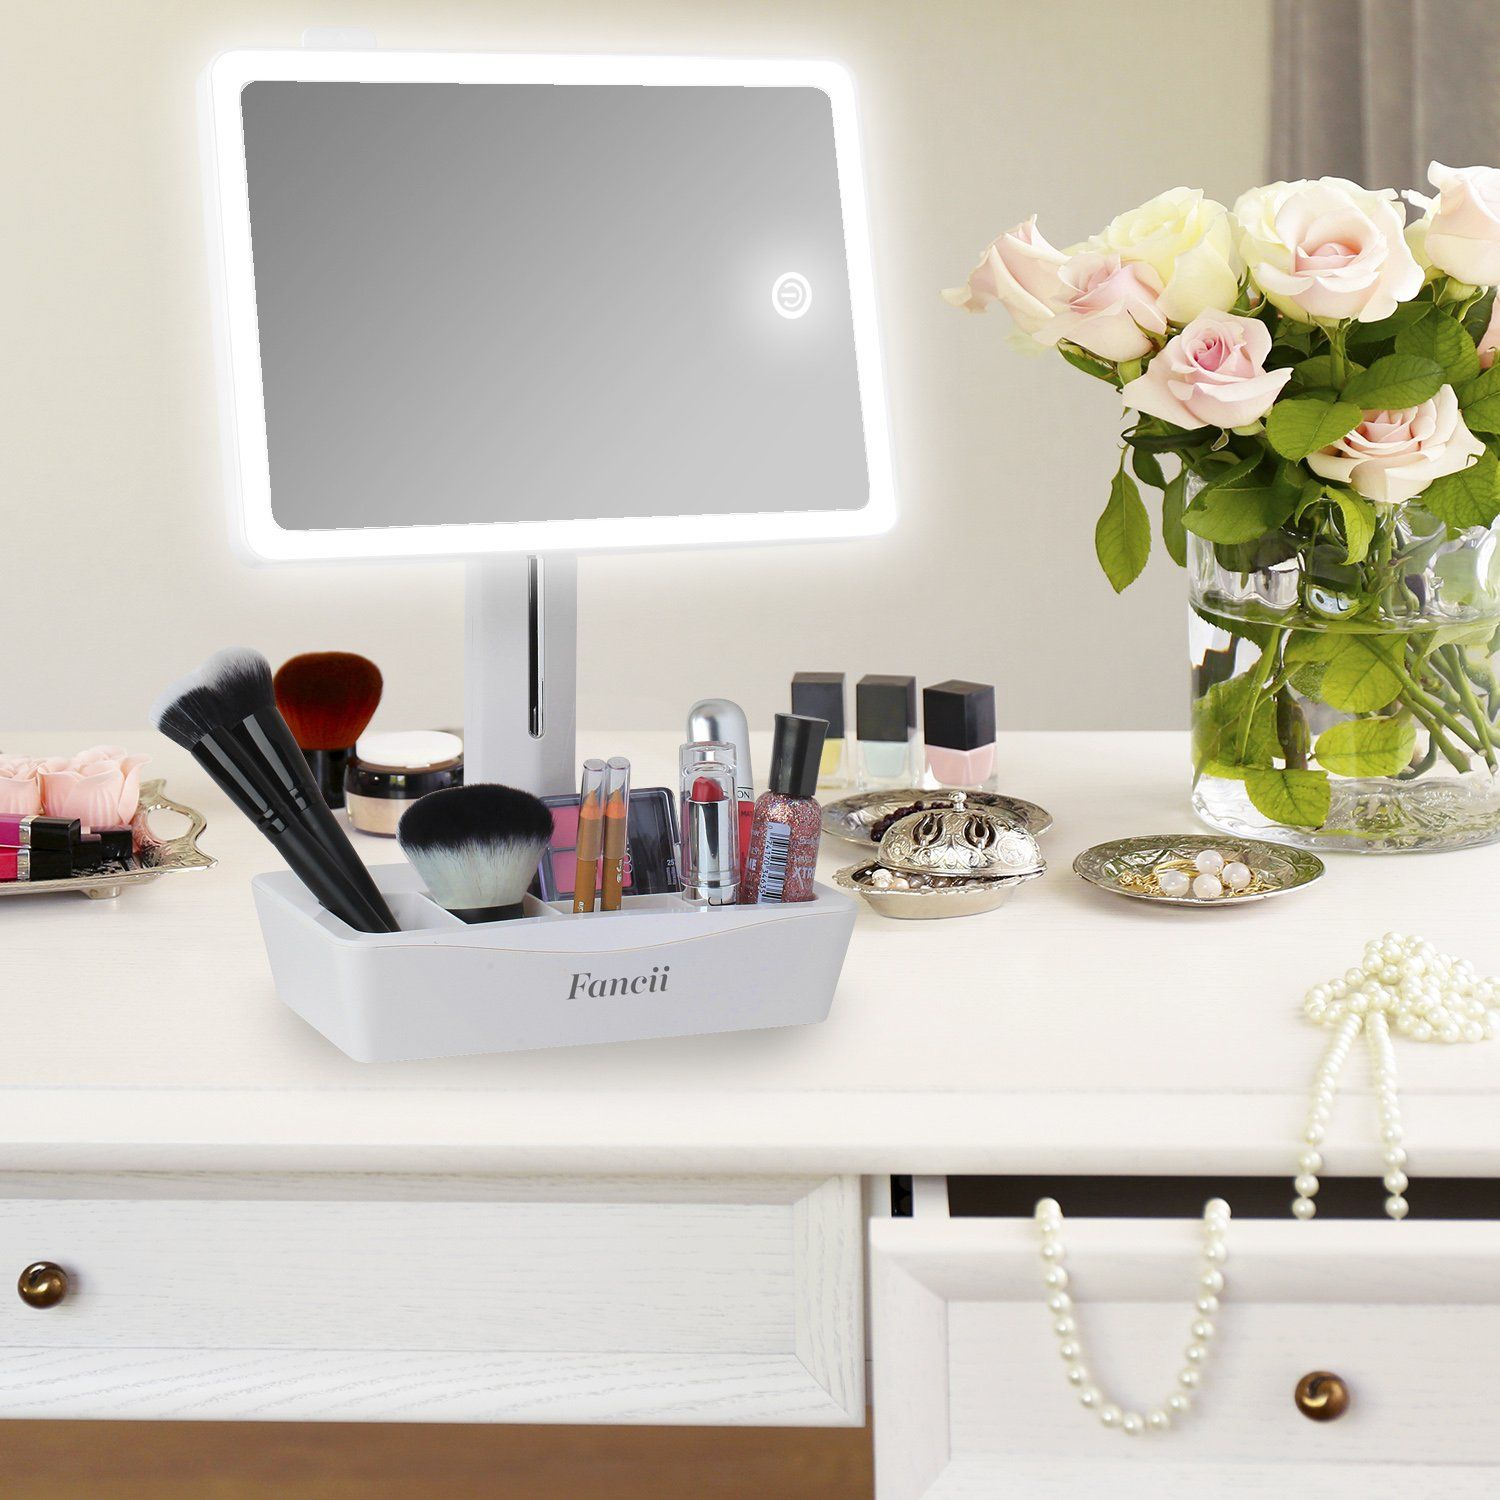 Fancii Led Lighted Large Vanity Makeup Mirror With 10x Magnifying Mirror Dimmable Natural Light Touch Screen Dua Makeup Mirror Makeup Vanity Magnifying Mirror